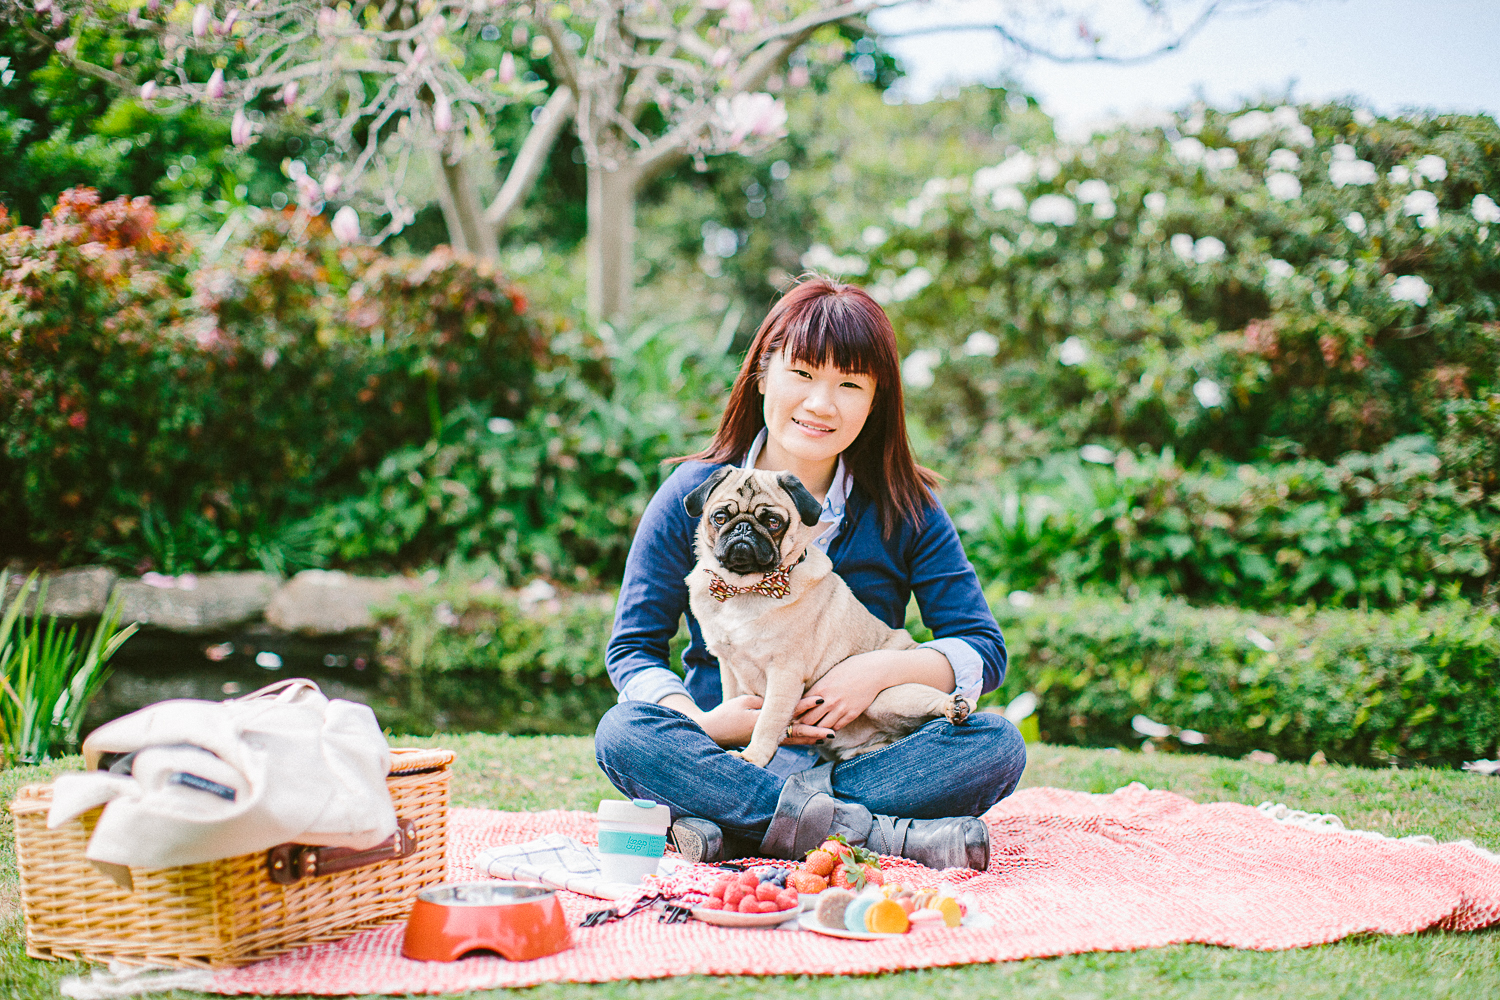 twoguineapigs_pet_photography_oh_jaffa_picnic_pugs_1500-11.jpg